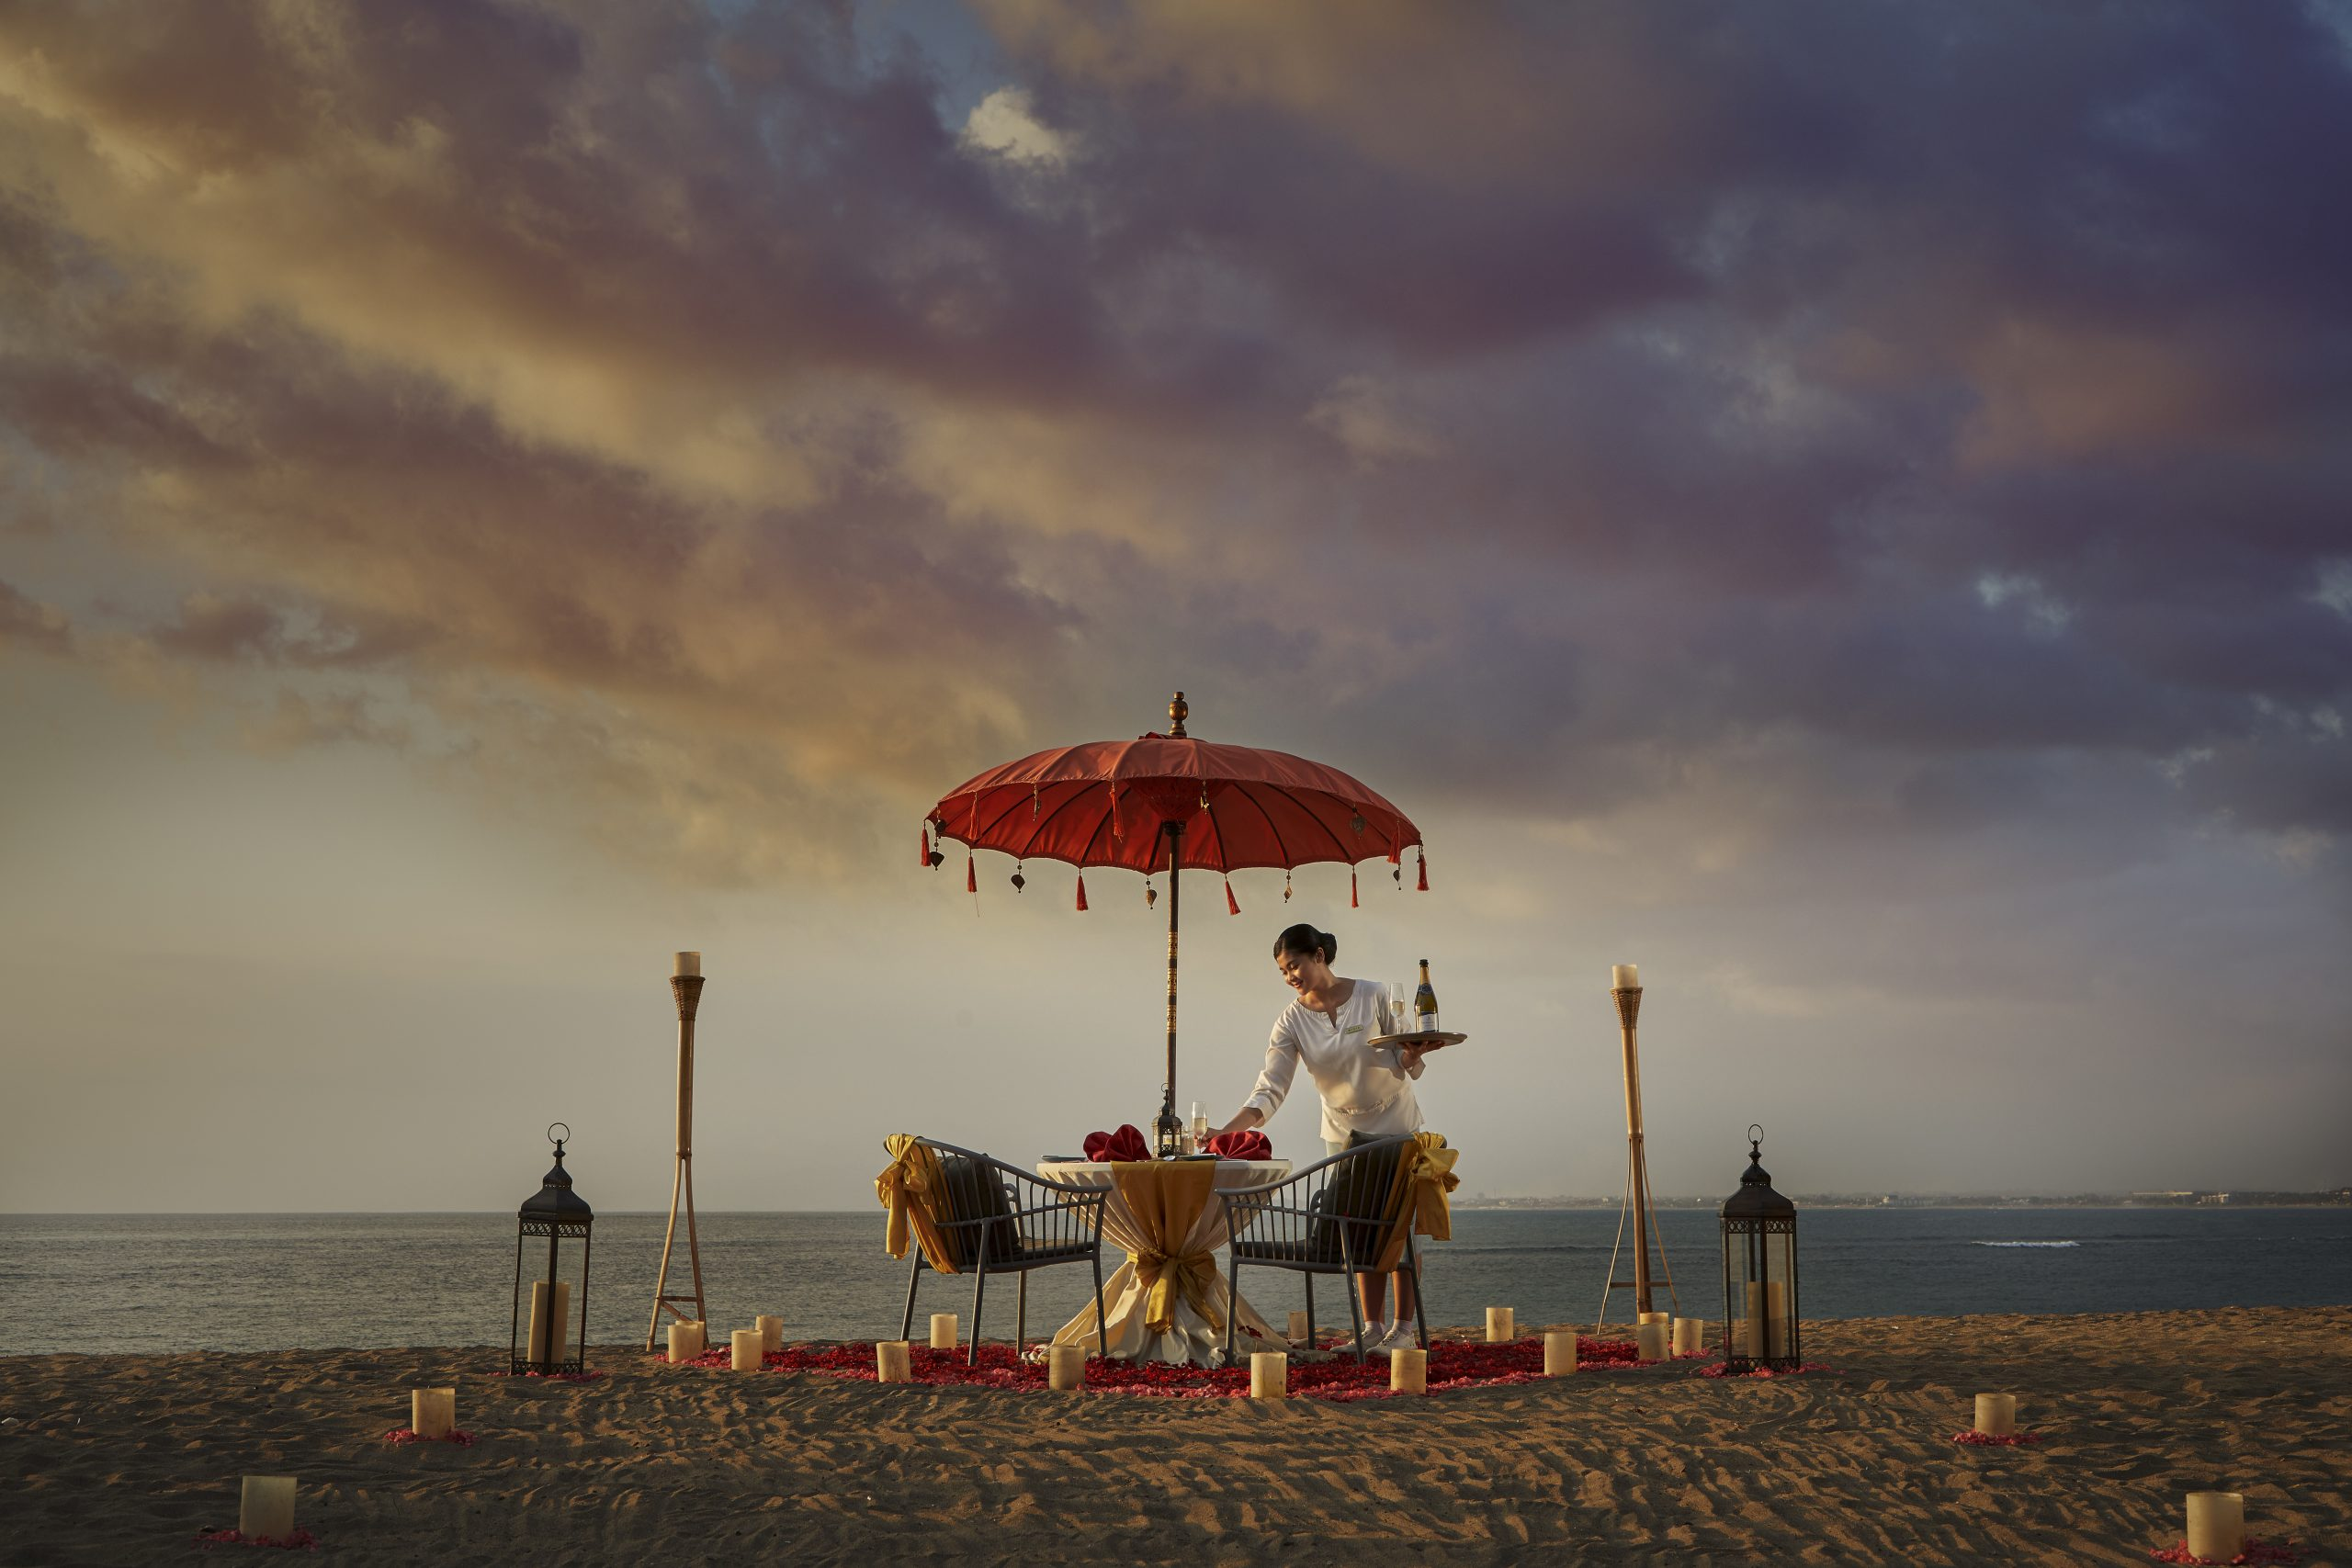 http://highend-traveller.com/a-romance-to-remember-forever-valentines-day-at-the-anvaya-beach-resort-bali/